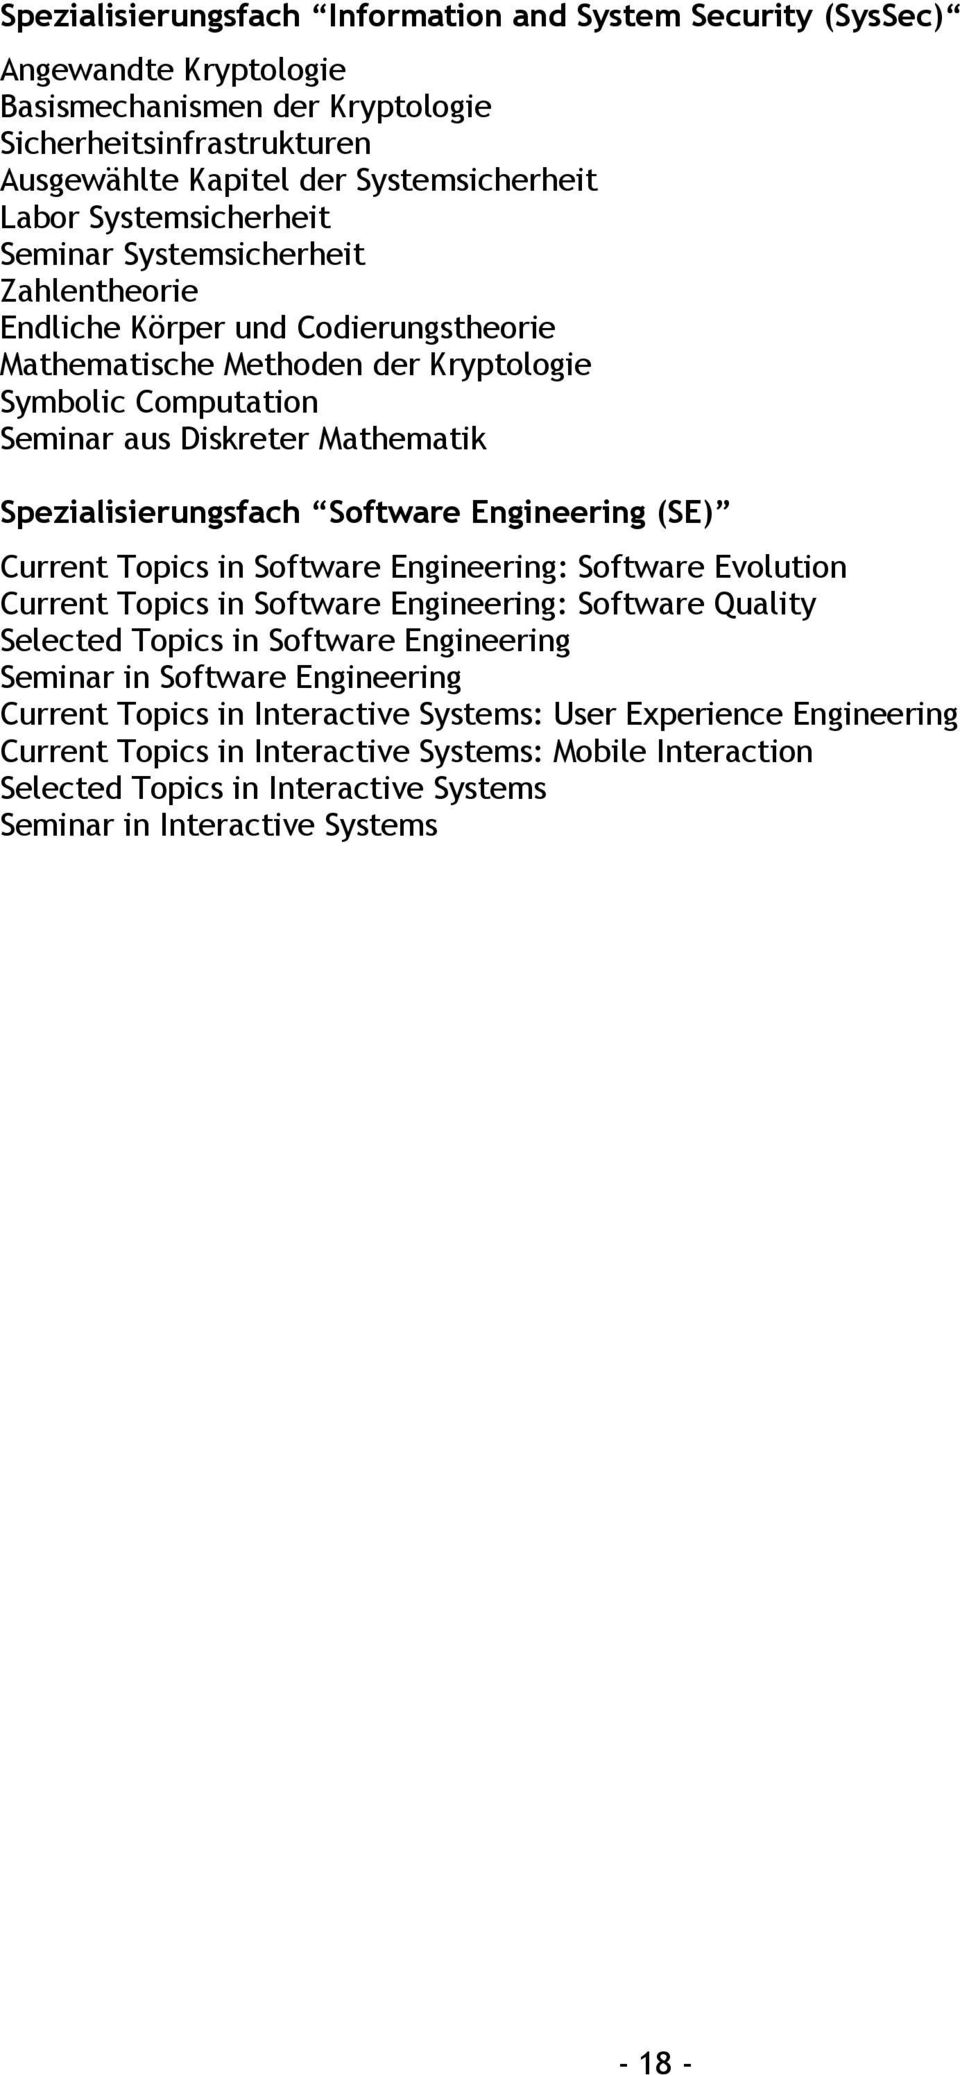 Spezialisierungsfach Software Engineering (SE) Current Topics in Software Engineering: Software Evolution Current Topics in Software Engineering: Software Quality Selected Topics in Software